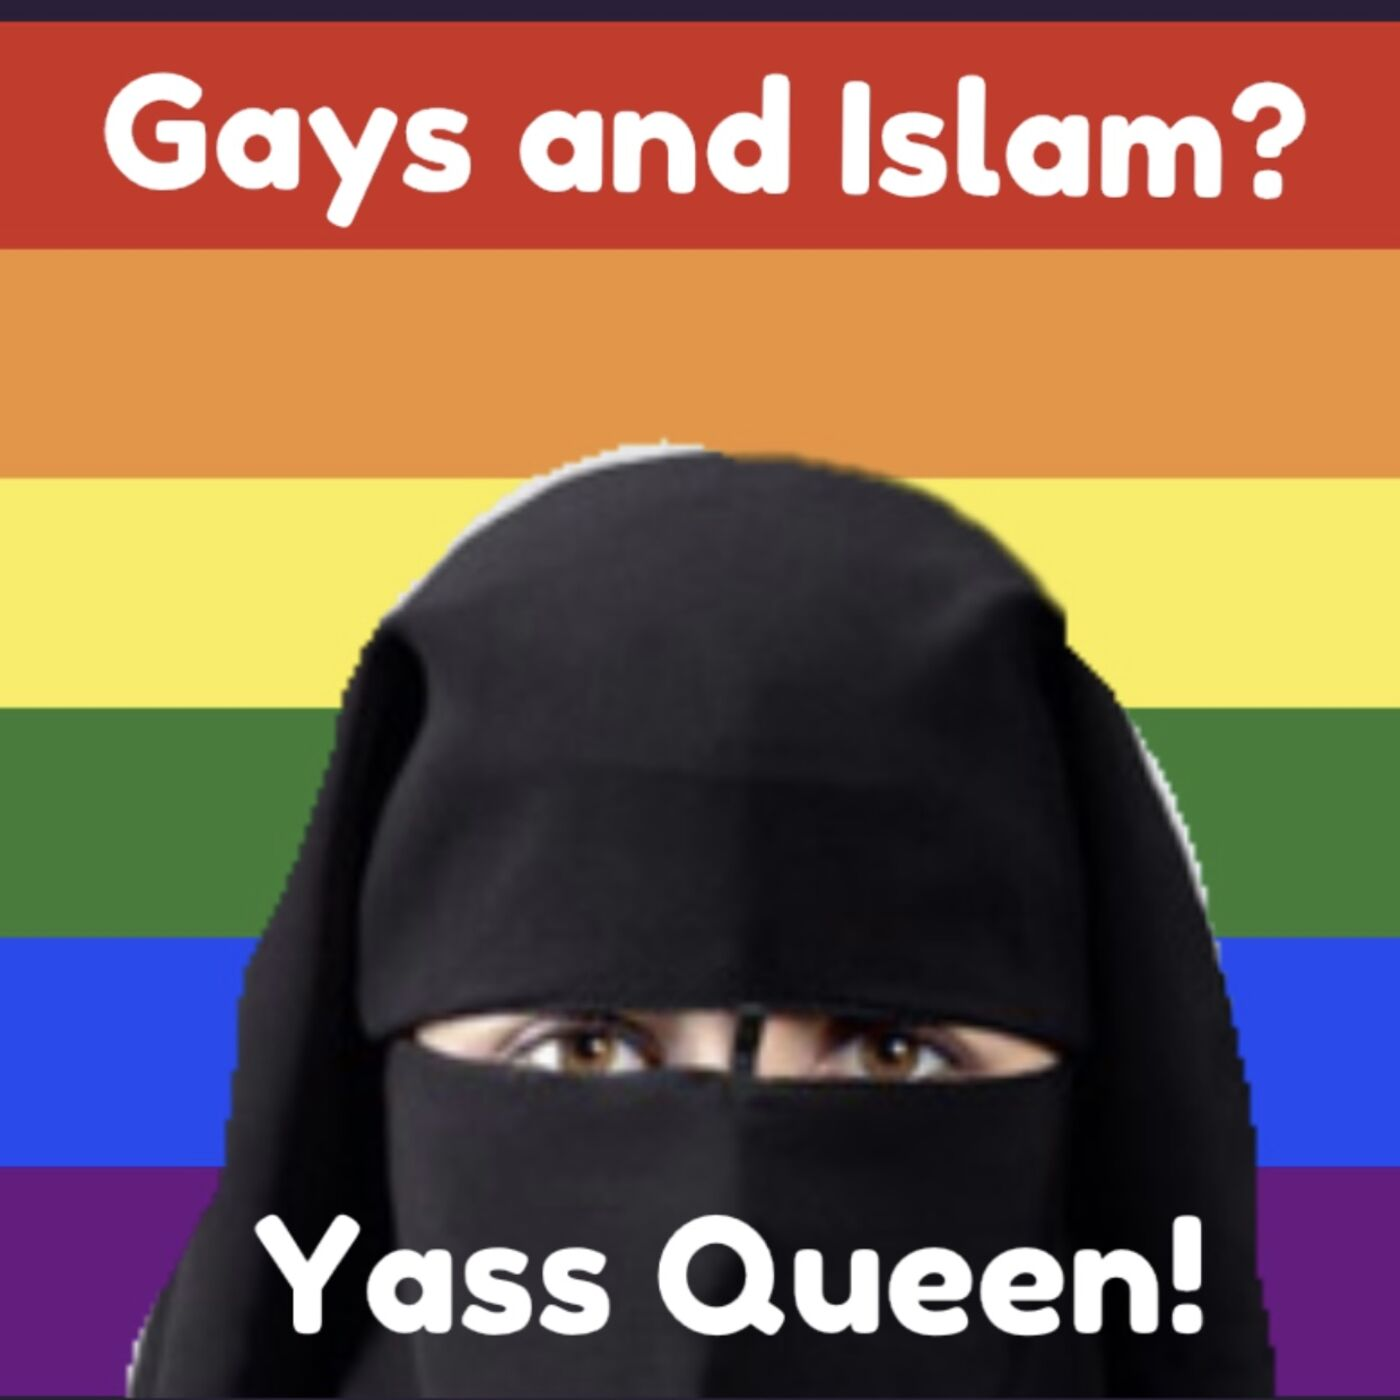 Episode 30: Gays and Islam? Yass Queen!